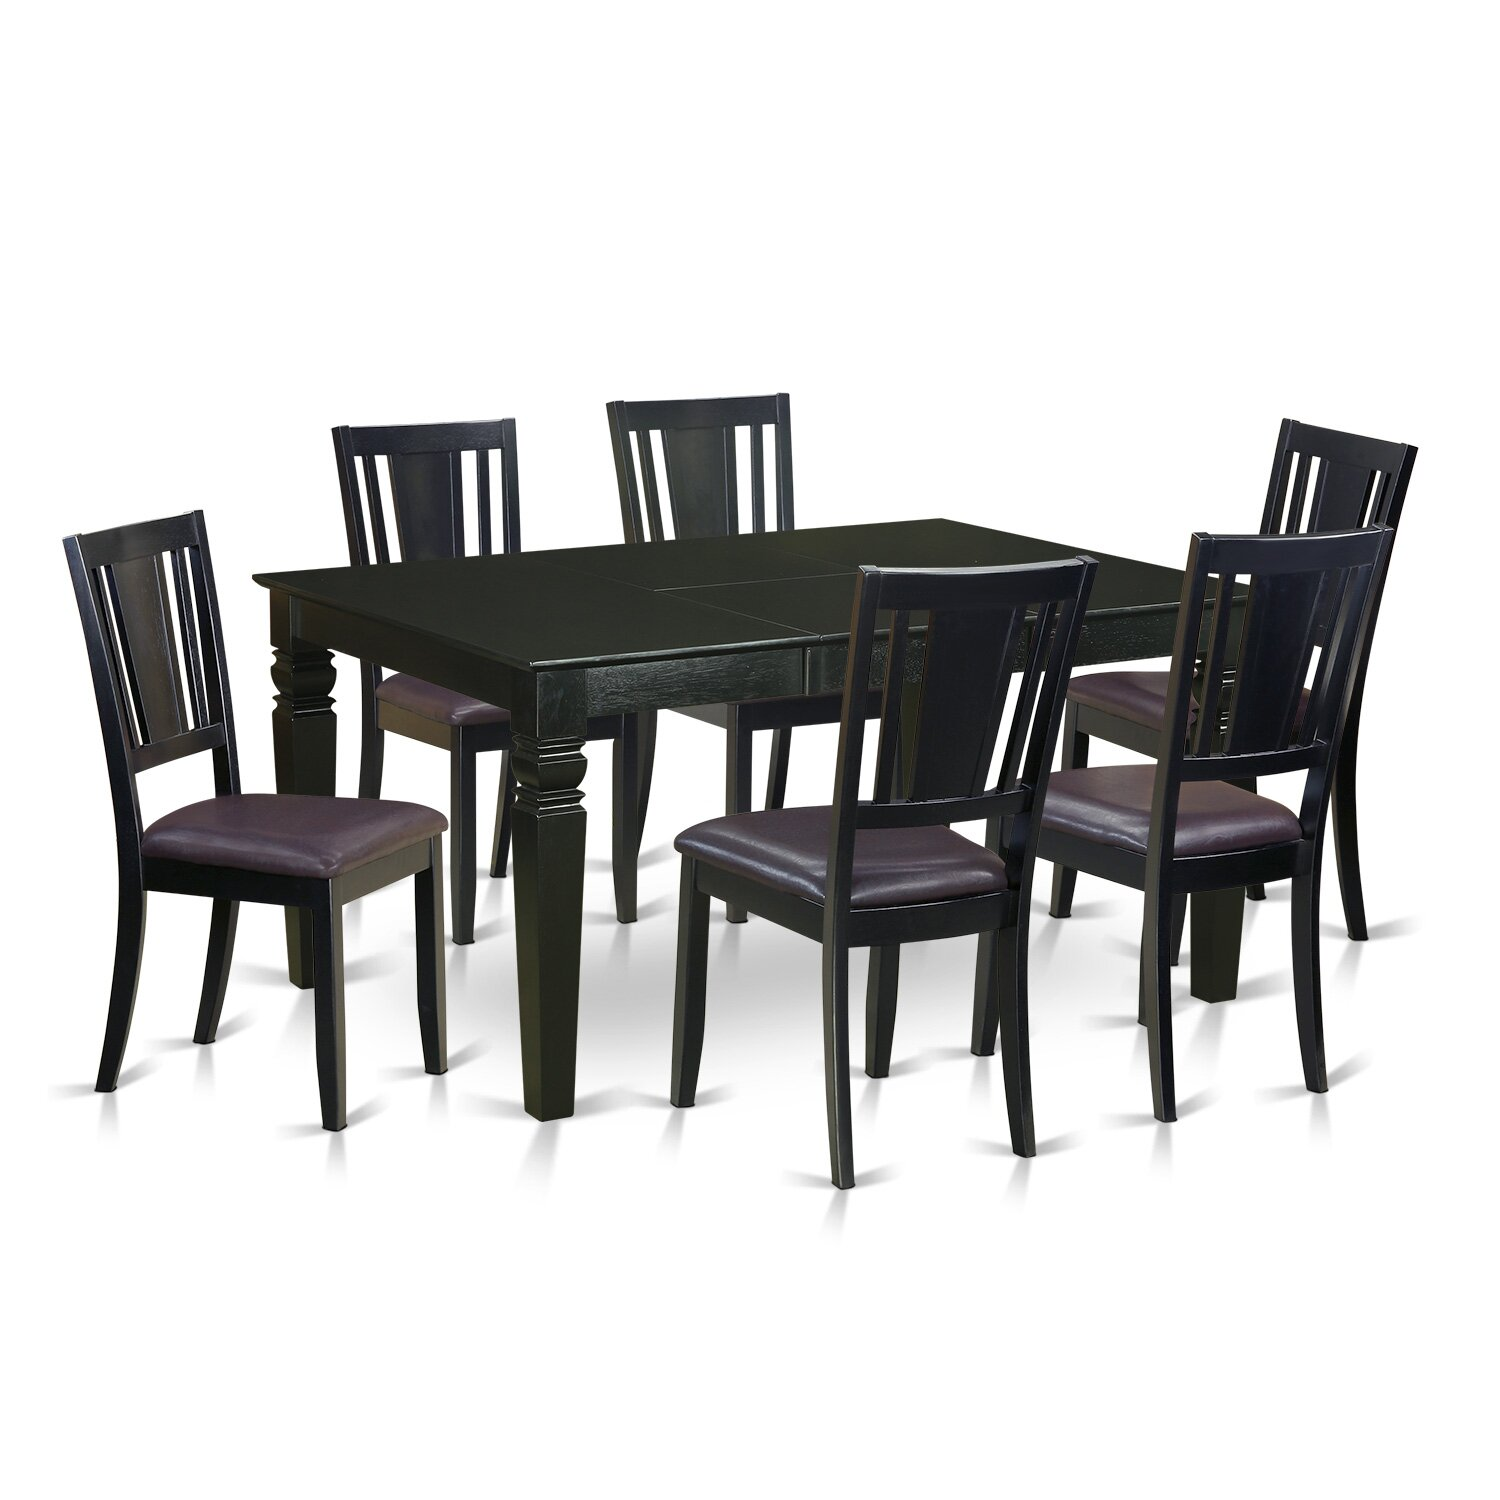 Wooden importers weston 7 piece dining set wayfair for Kitchen dining room furniture